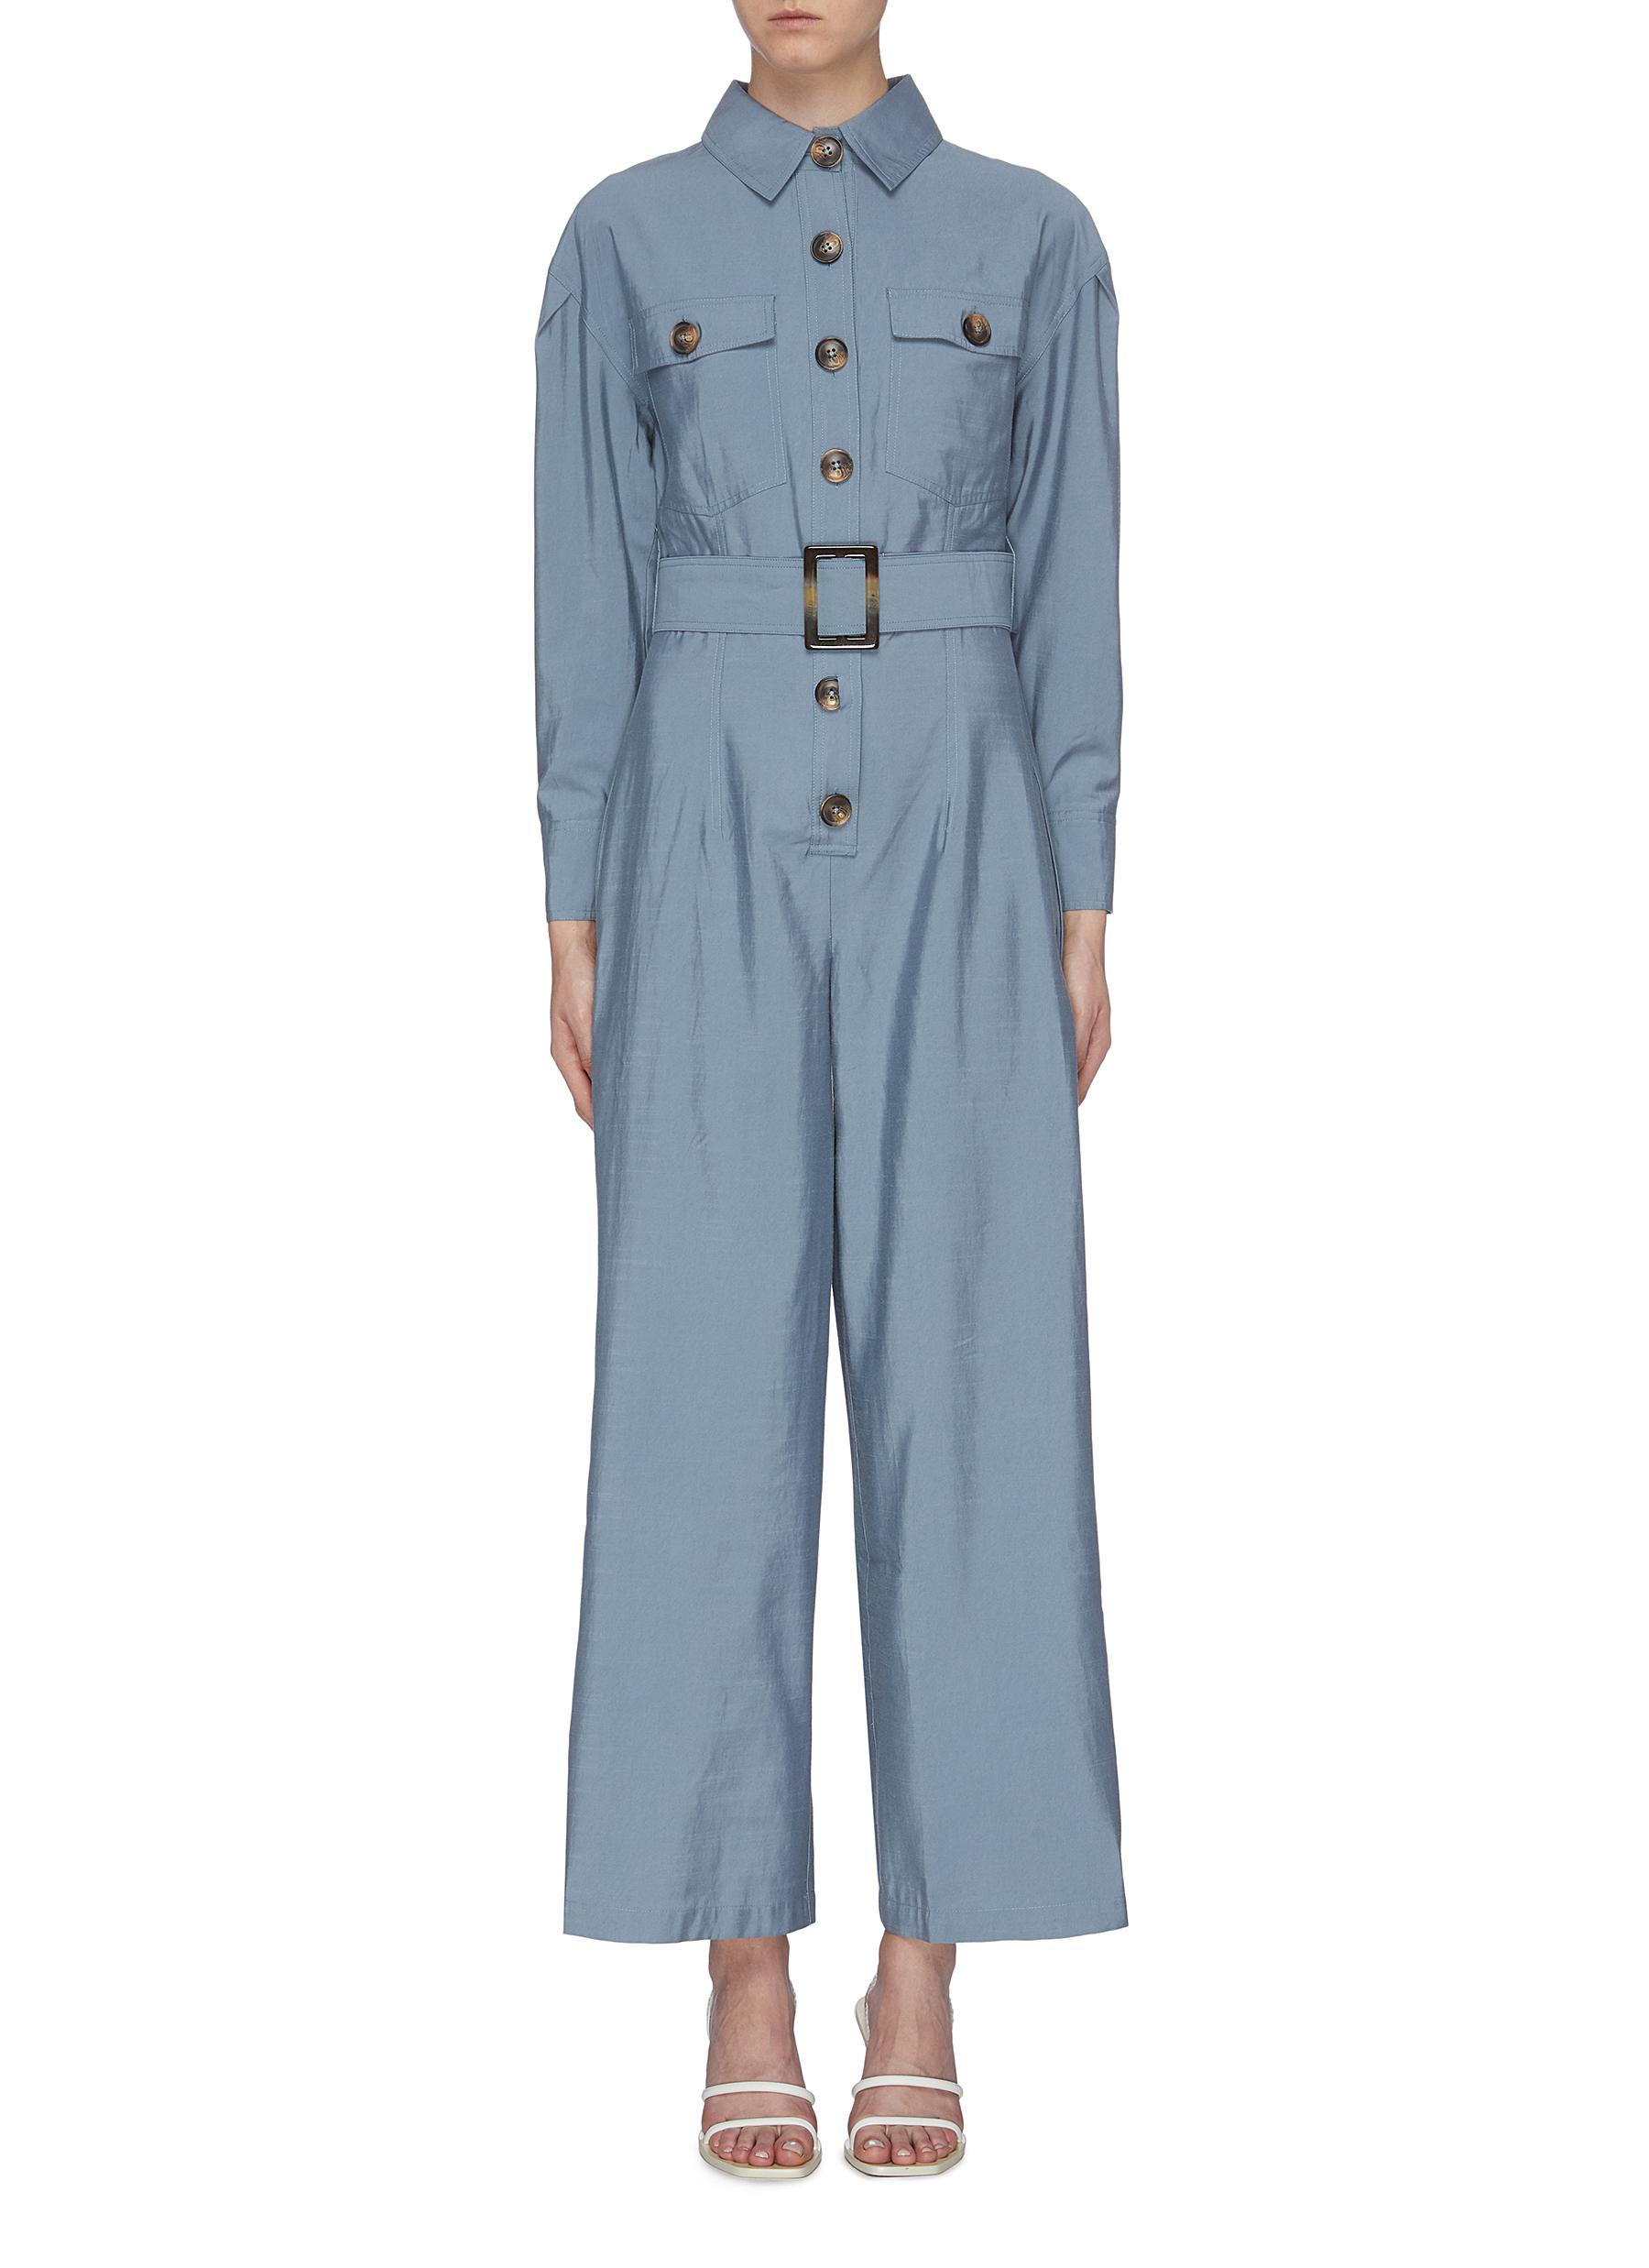 No Lies belted button front wide leg jumpsuit by C/Meo Collective